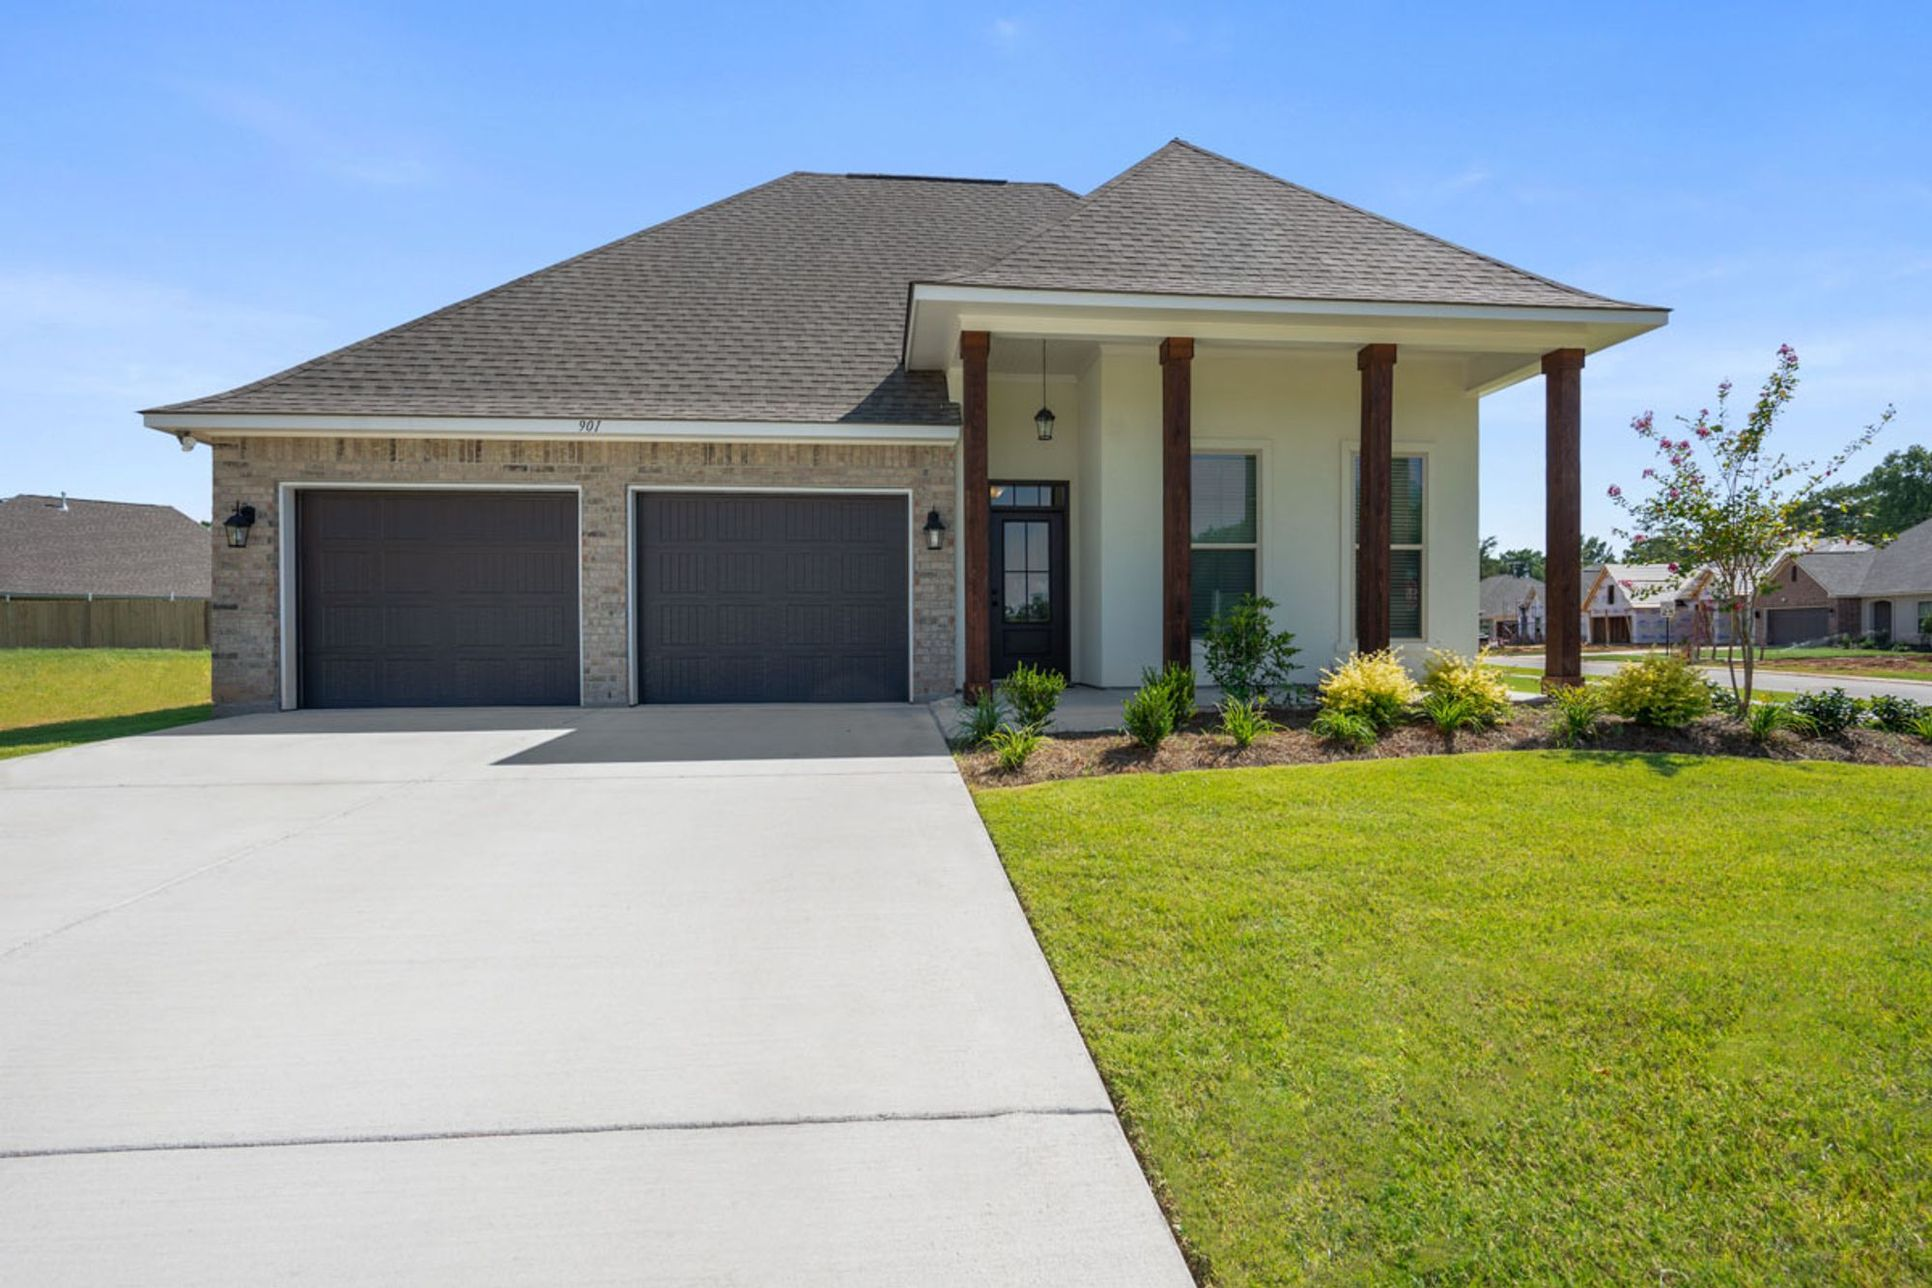 new homes in iowa la by dsld homes:Violet III A Floor Plan - Willow Heights Model Home - DSLD Homes - New Construction Homes